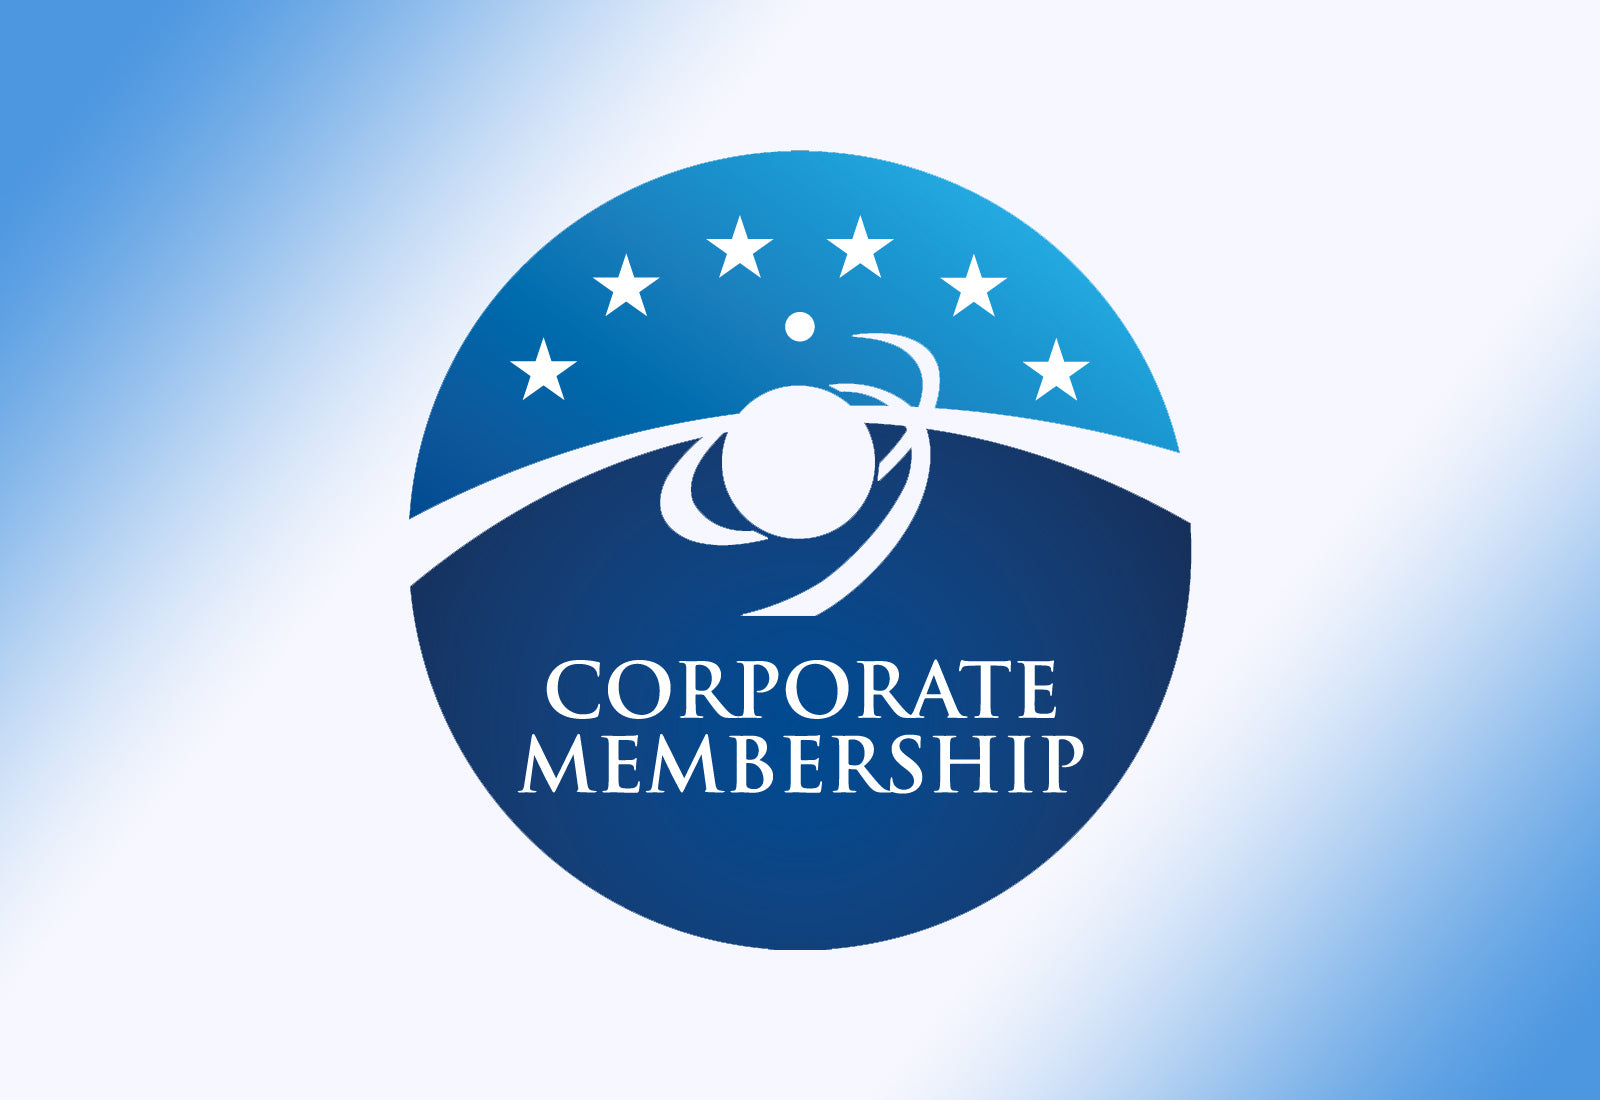 space foundation-eagle-eyes-corporate-member